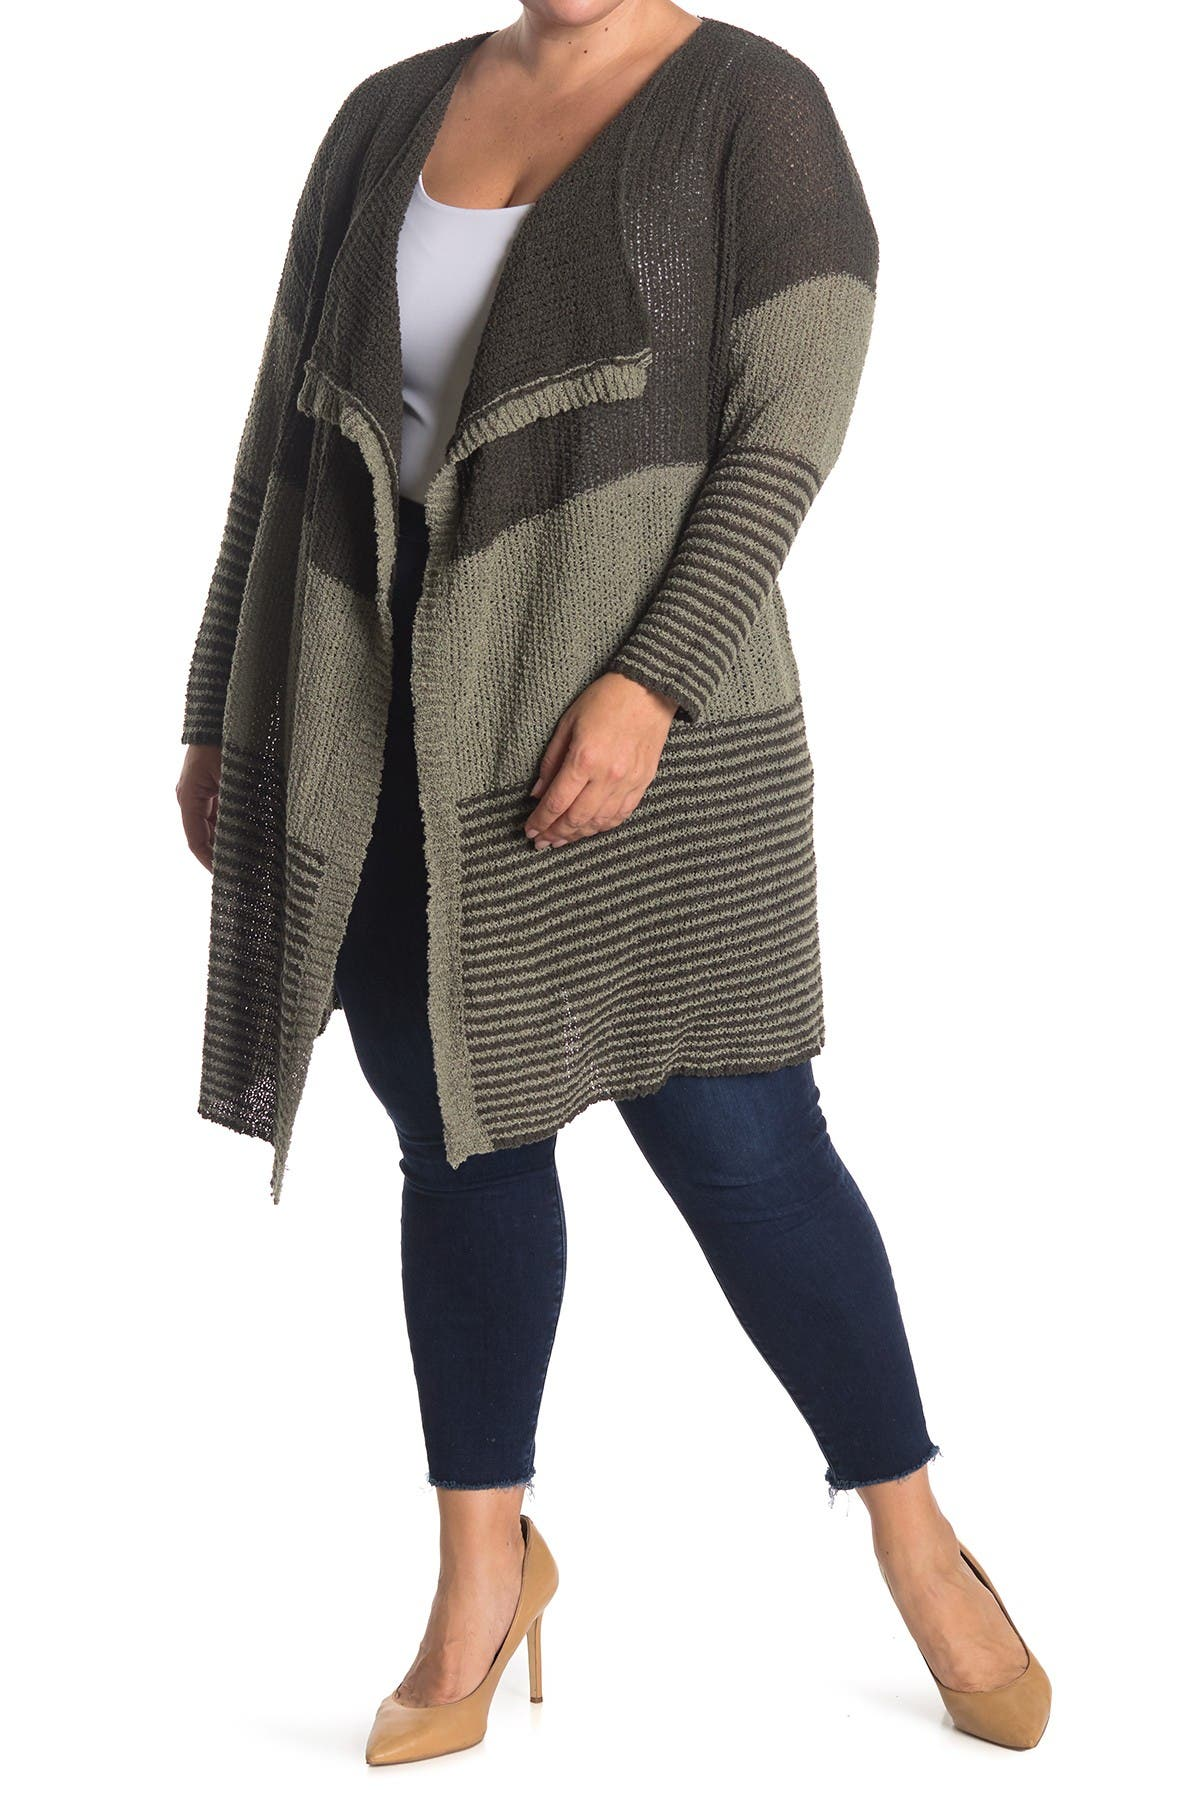 Image of STITCHDROP Colorblock Stripe Flyaway Cardigan